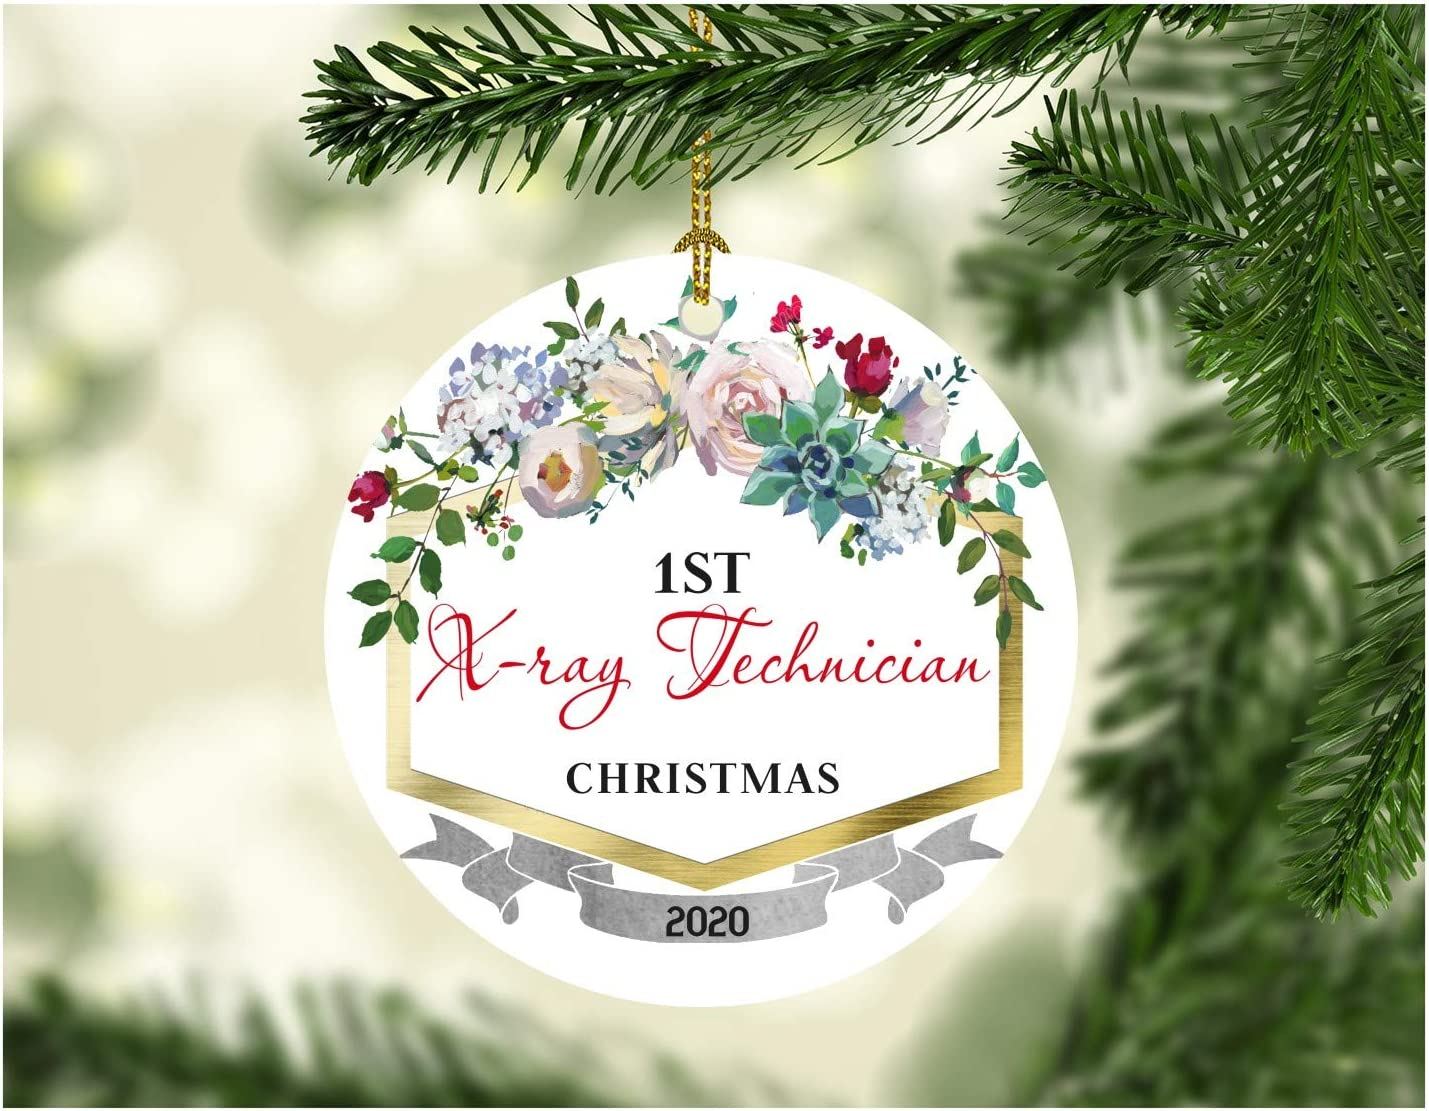 "First Christmas Ornaments 2020 X-ray Technician New Job Gift Ideas Christmas Decorations For The Home Congrats On New Job Good Luck Present Ideas Family Funny Xmas 3"" MDF Plastic White"